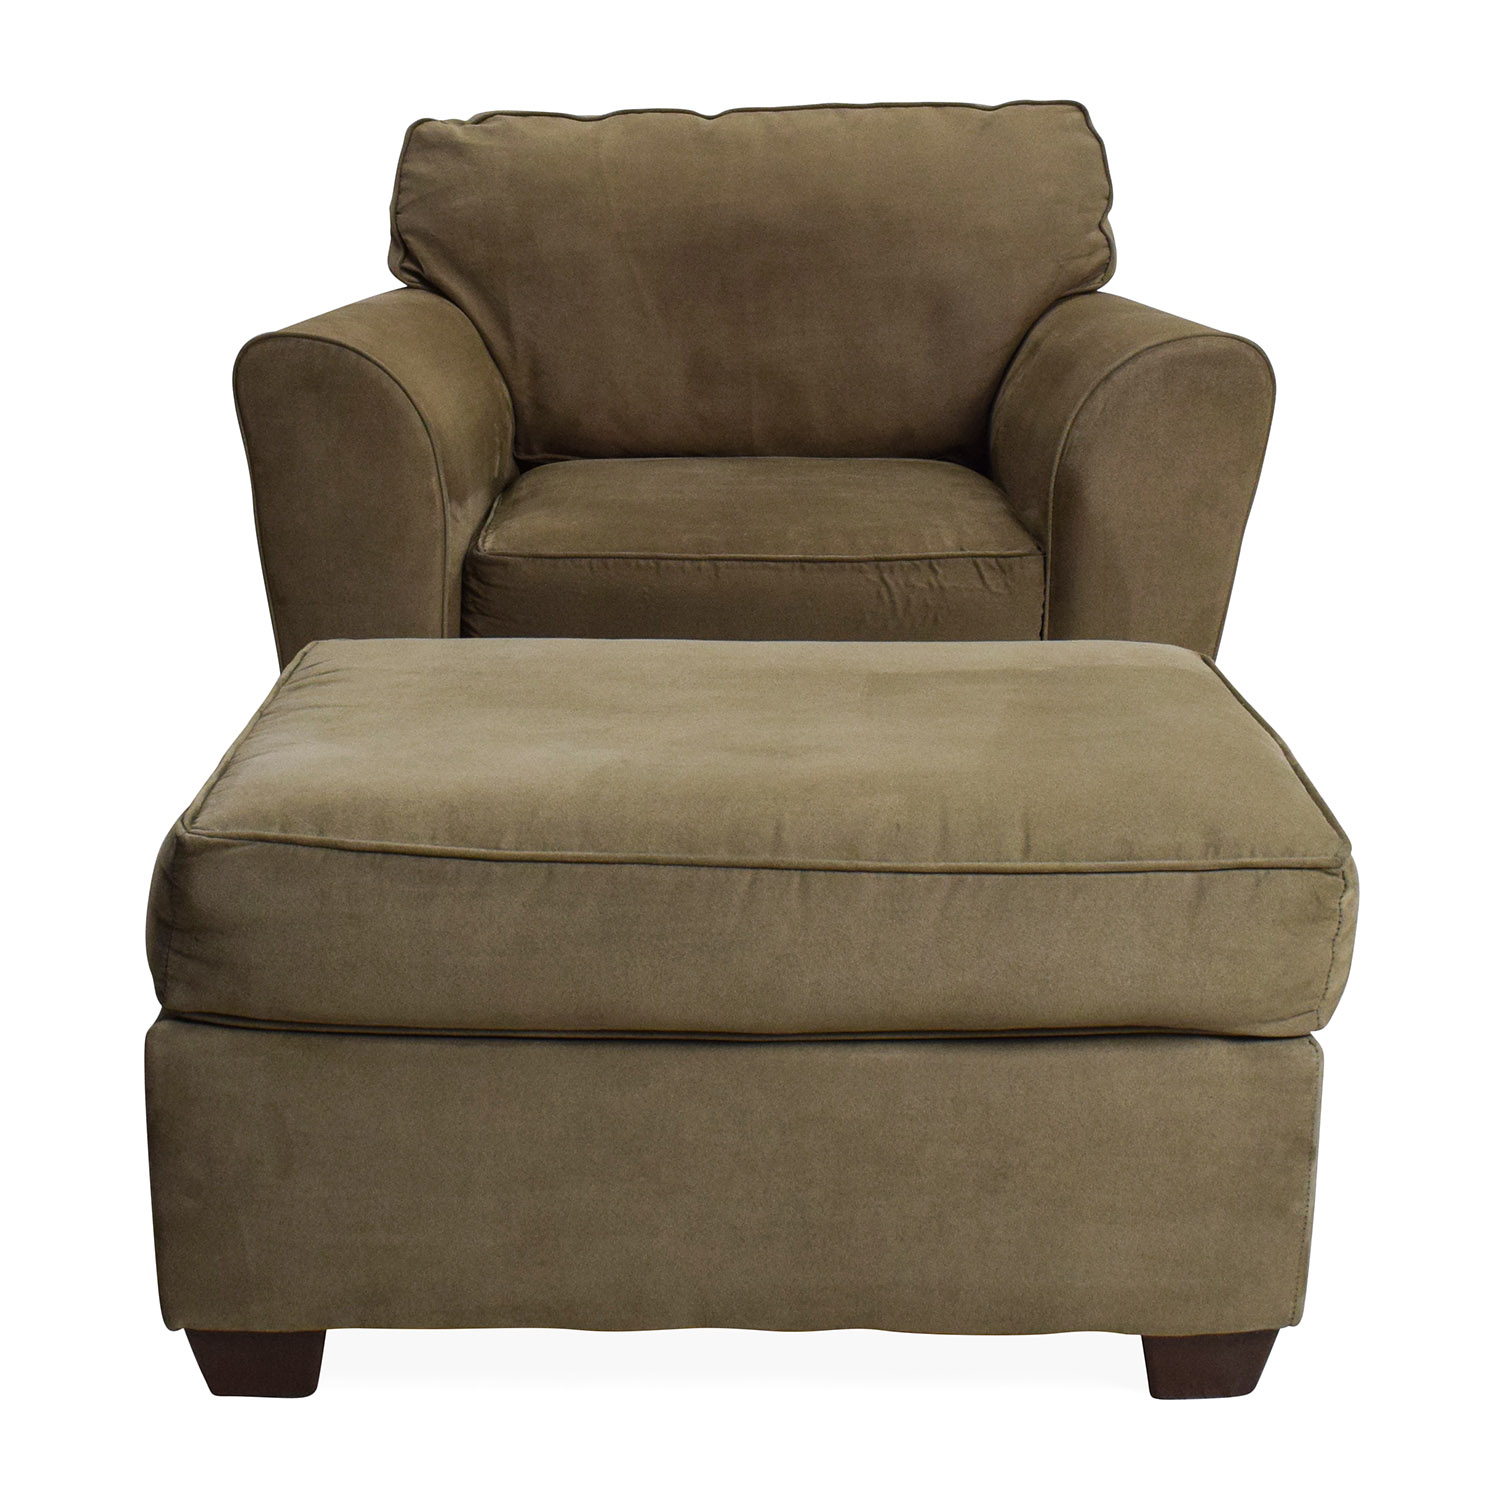 accent chairs under 150 lazy boy chair covers walmart arm with ottoman eunstudio